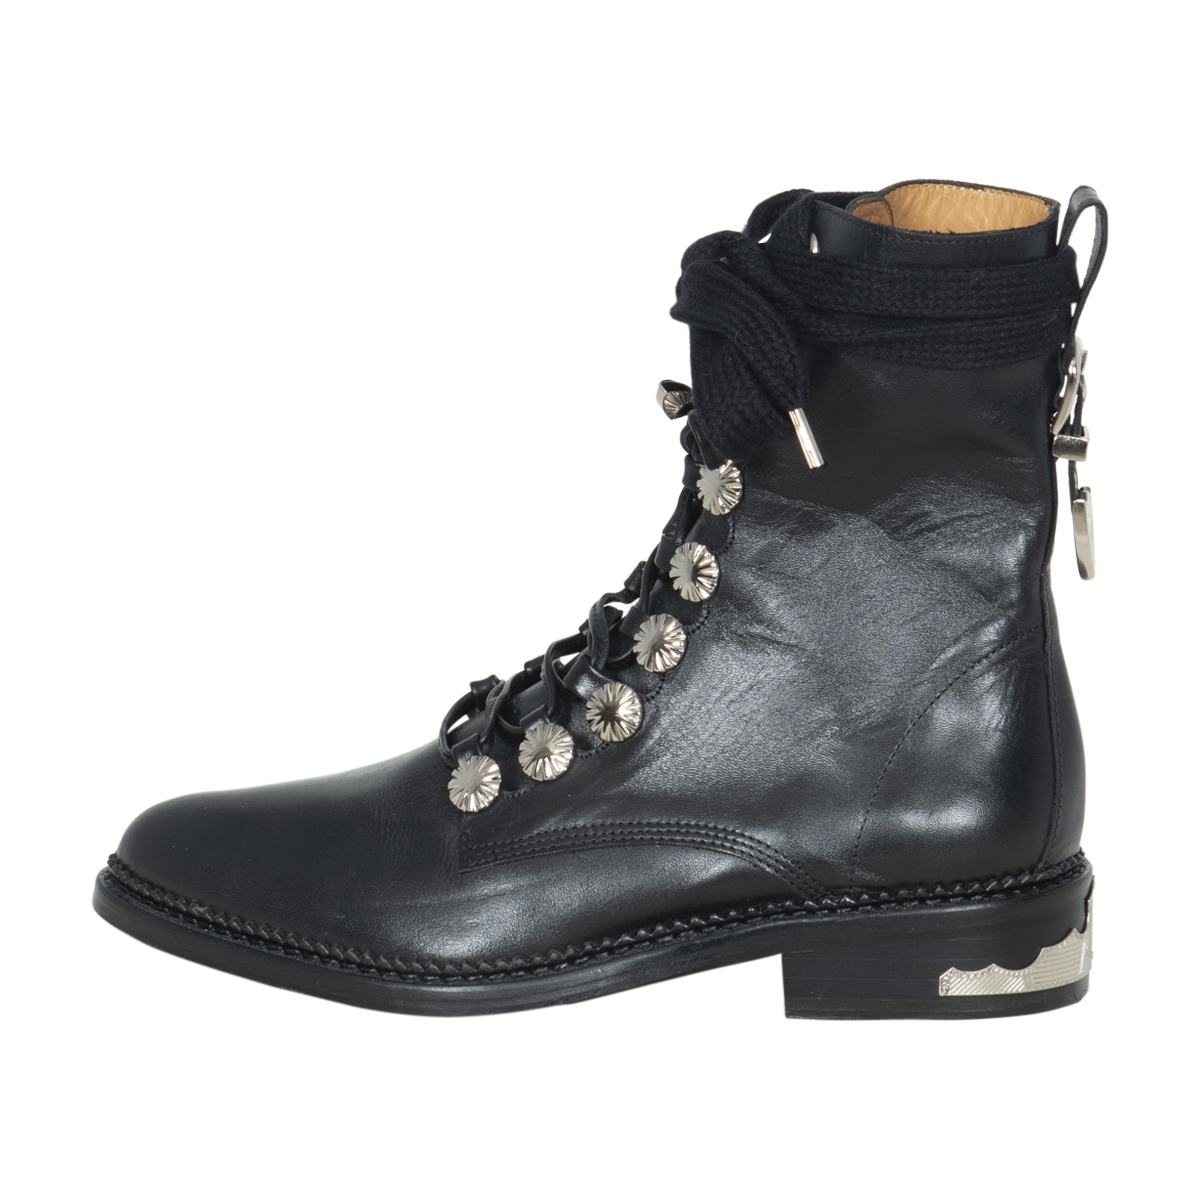 Toga Pulla Combat Lace Up Boots – New Condition